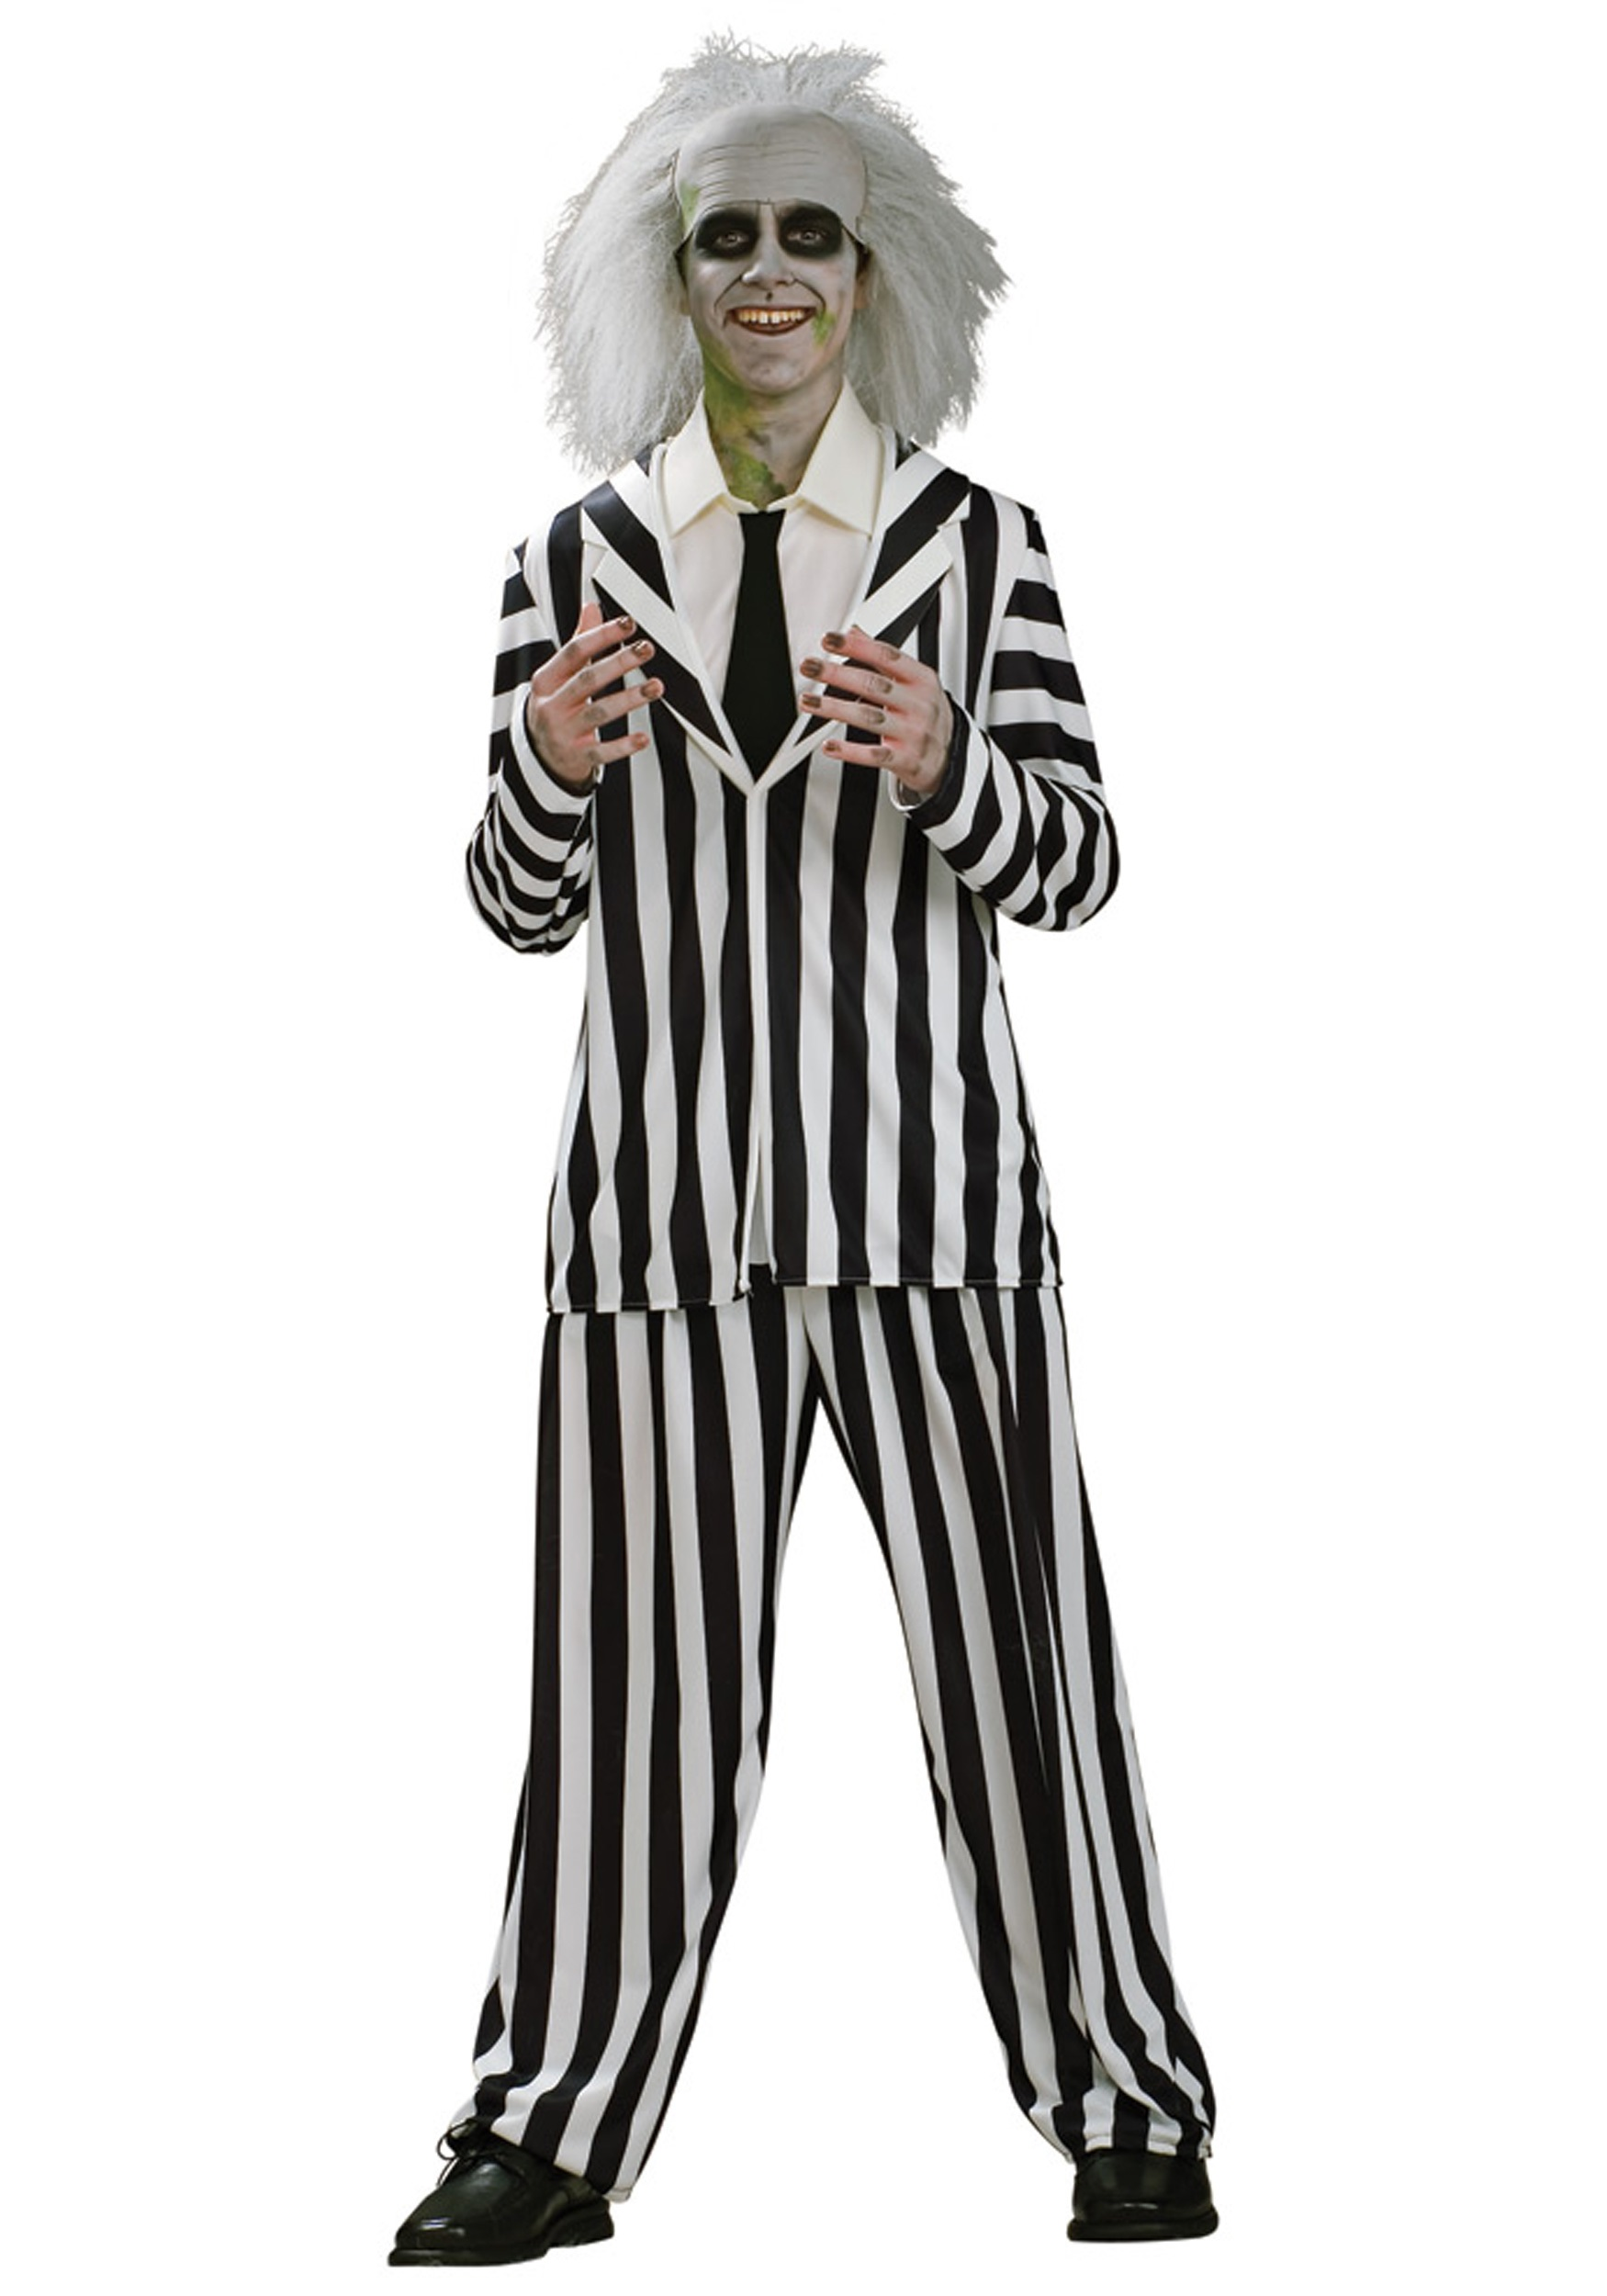 Teen Beetlejuice Costume Movie Character Costume